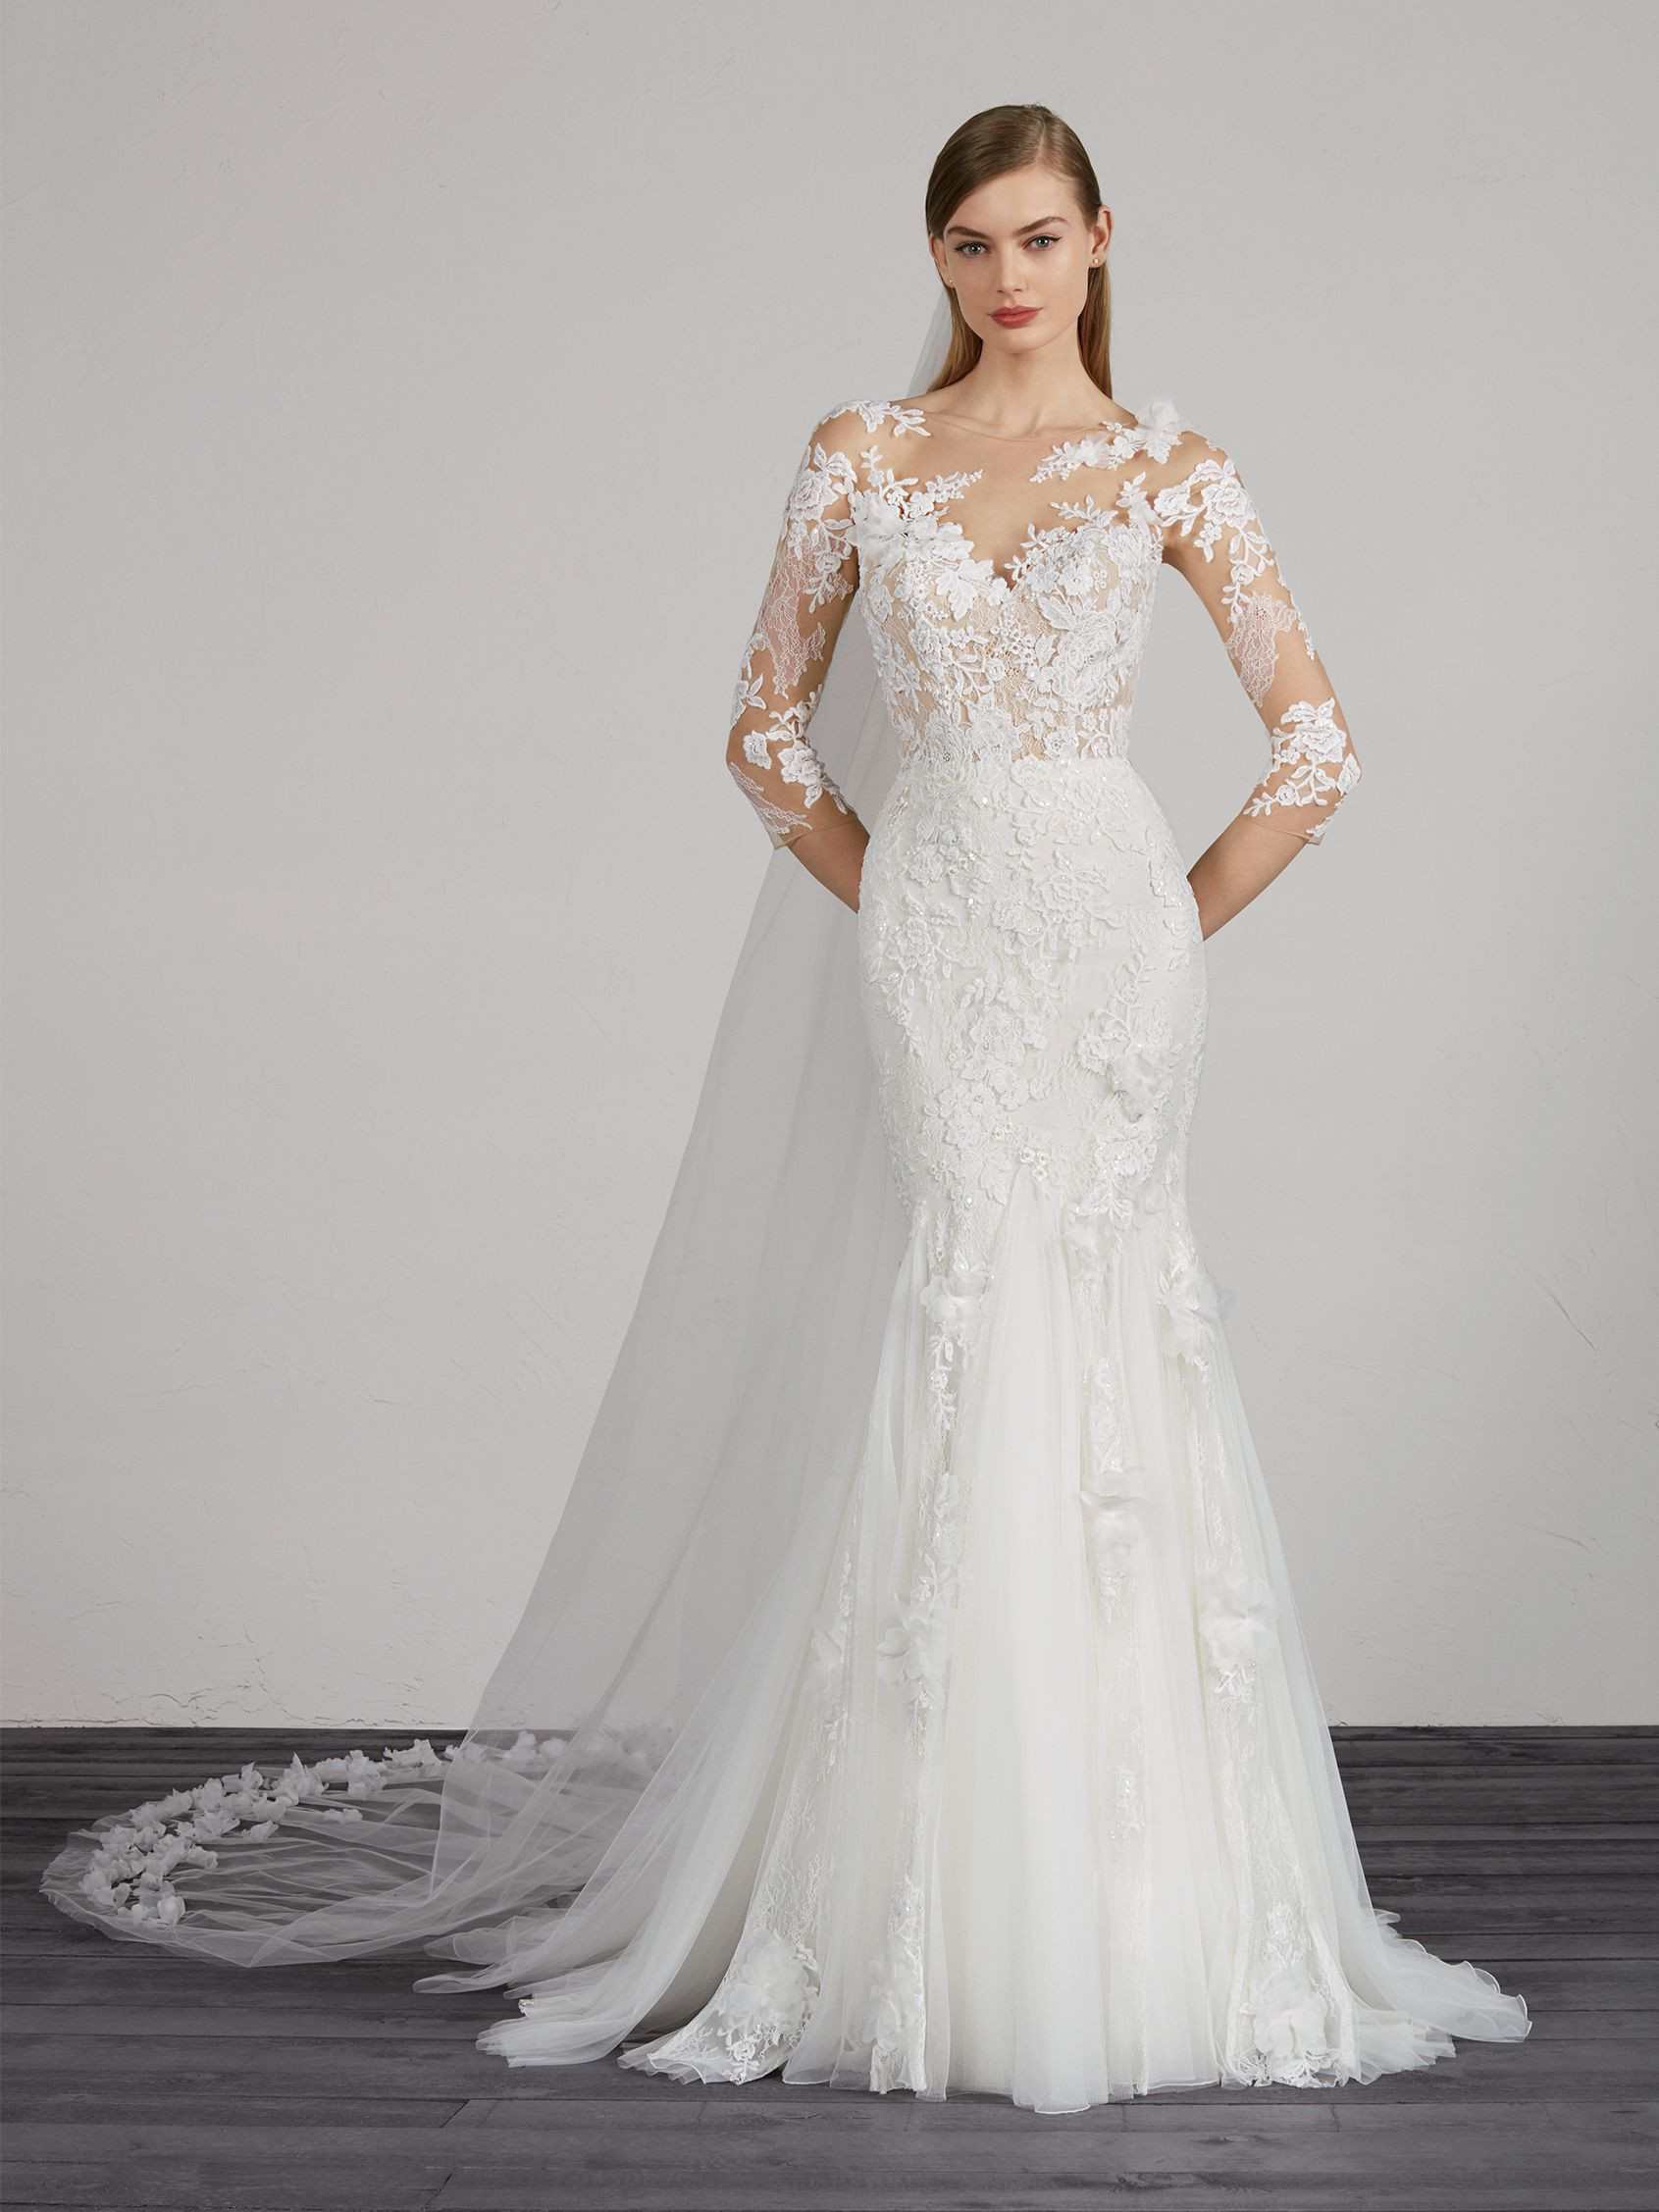 Lovely Mermaid Wedding Dress With Illusion Neckline